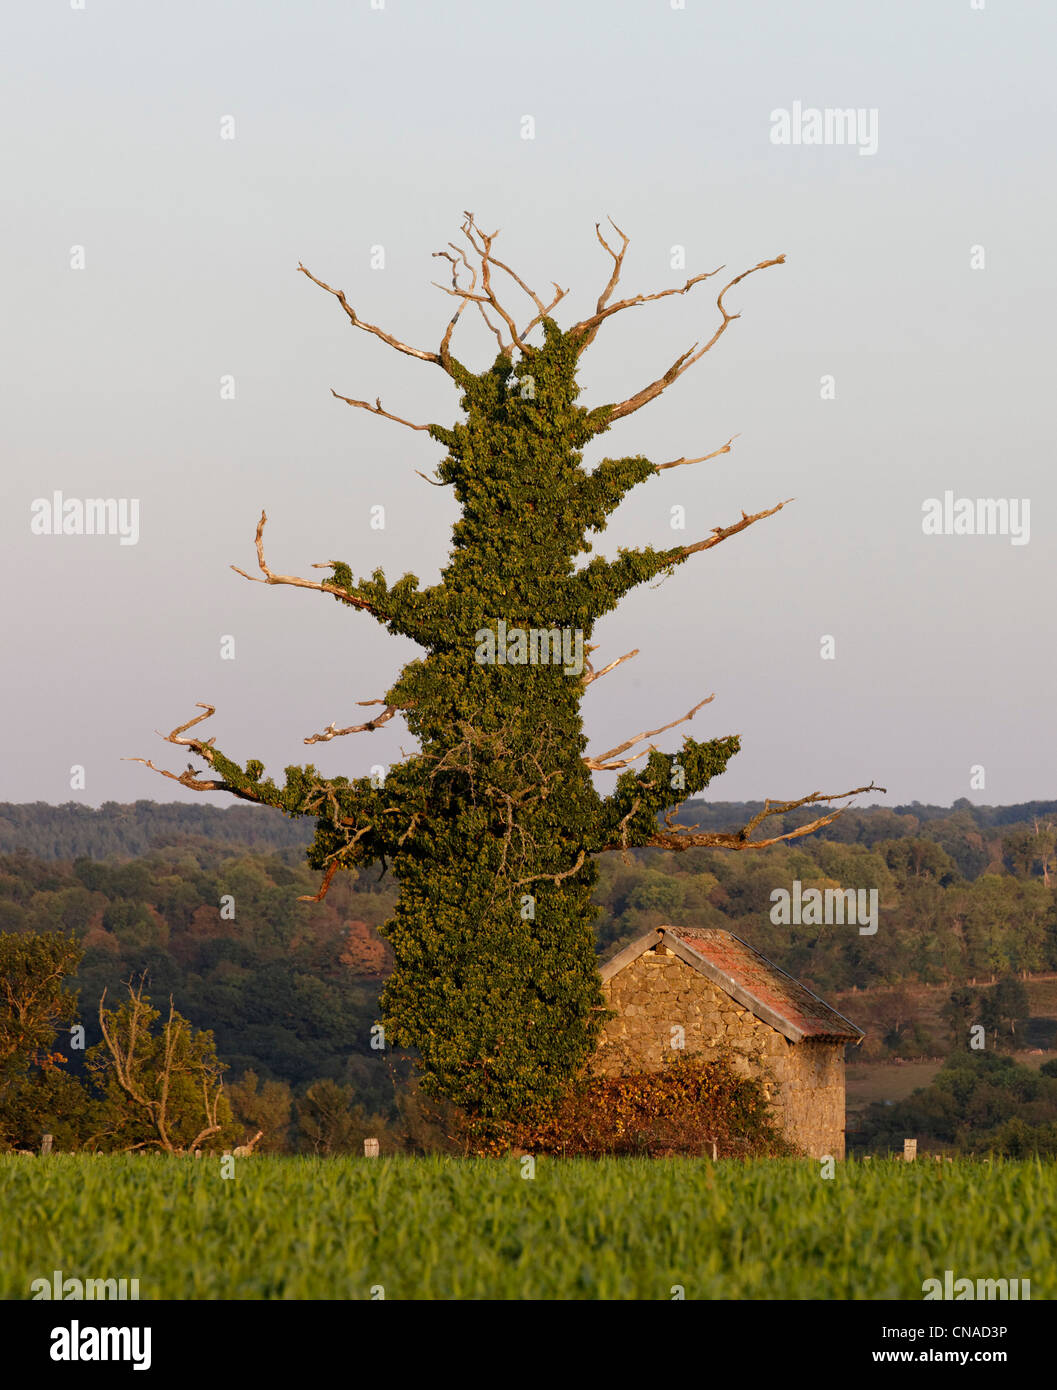 France, Creuse, old garden shed and dead tree - Stock Image